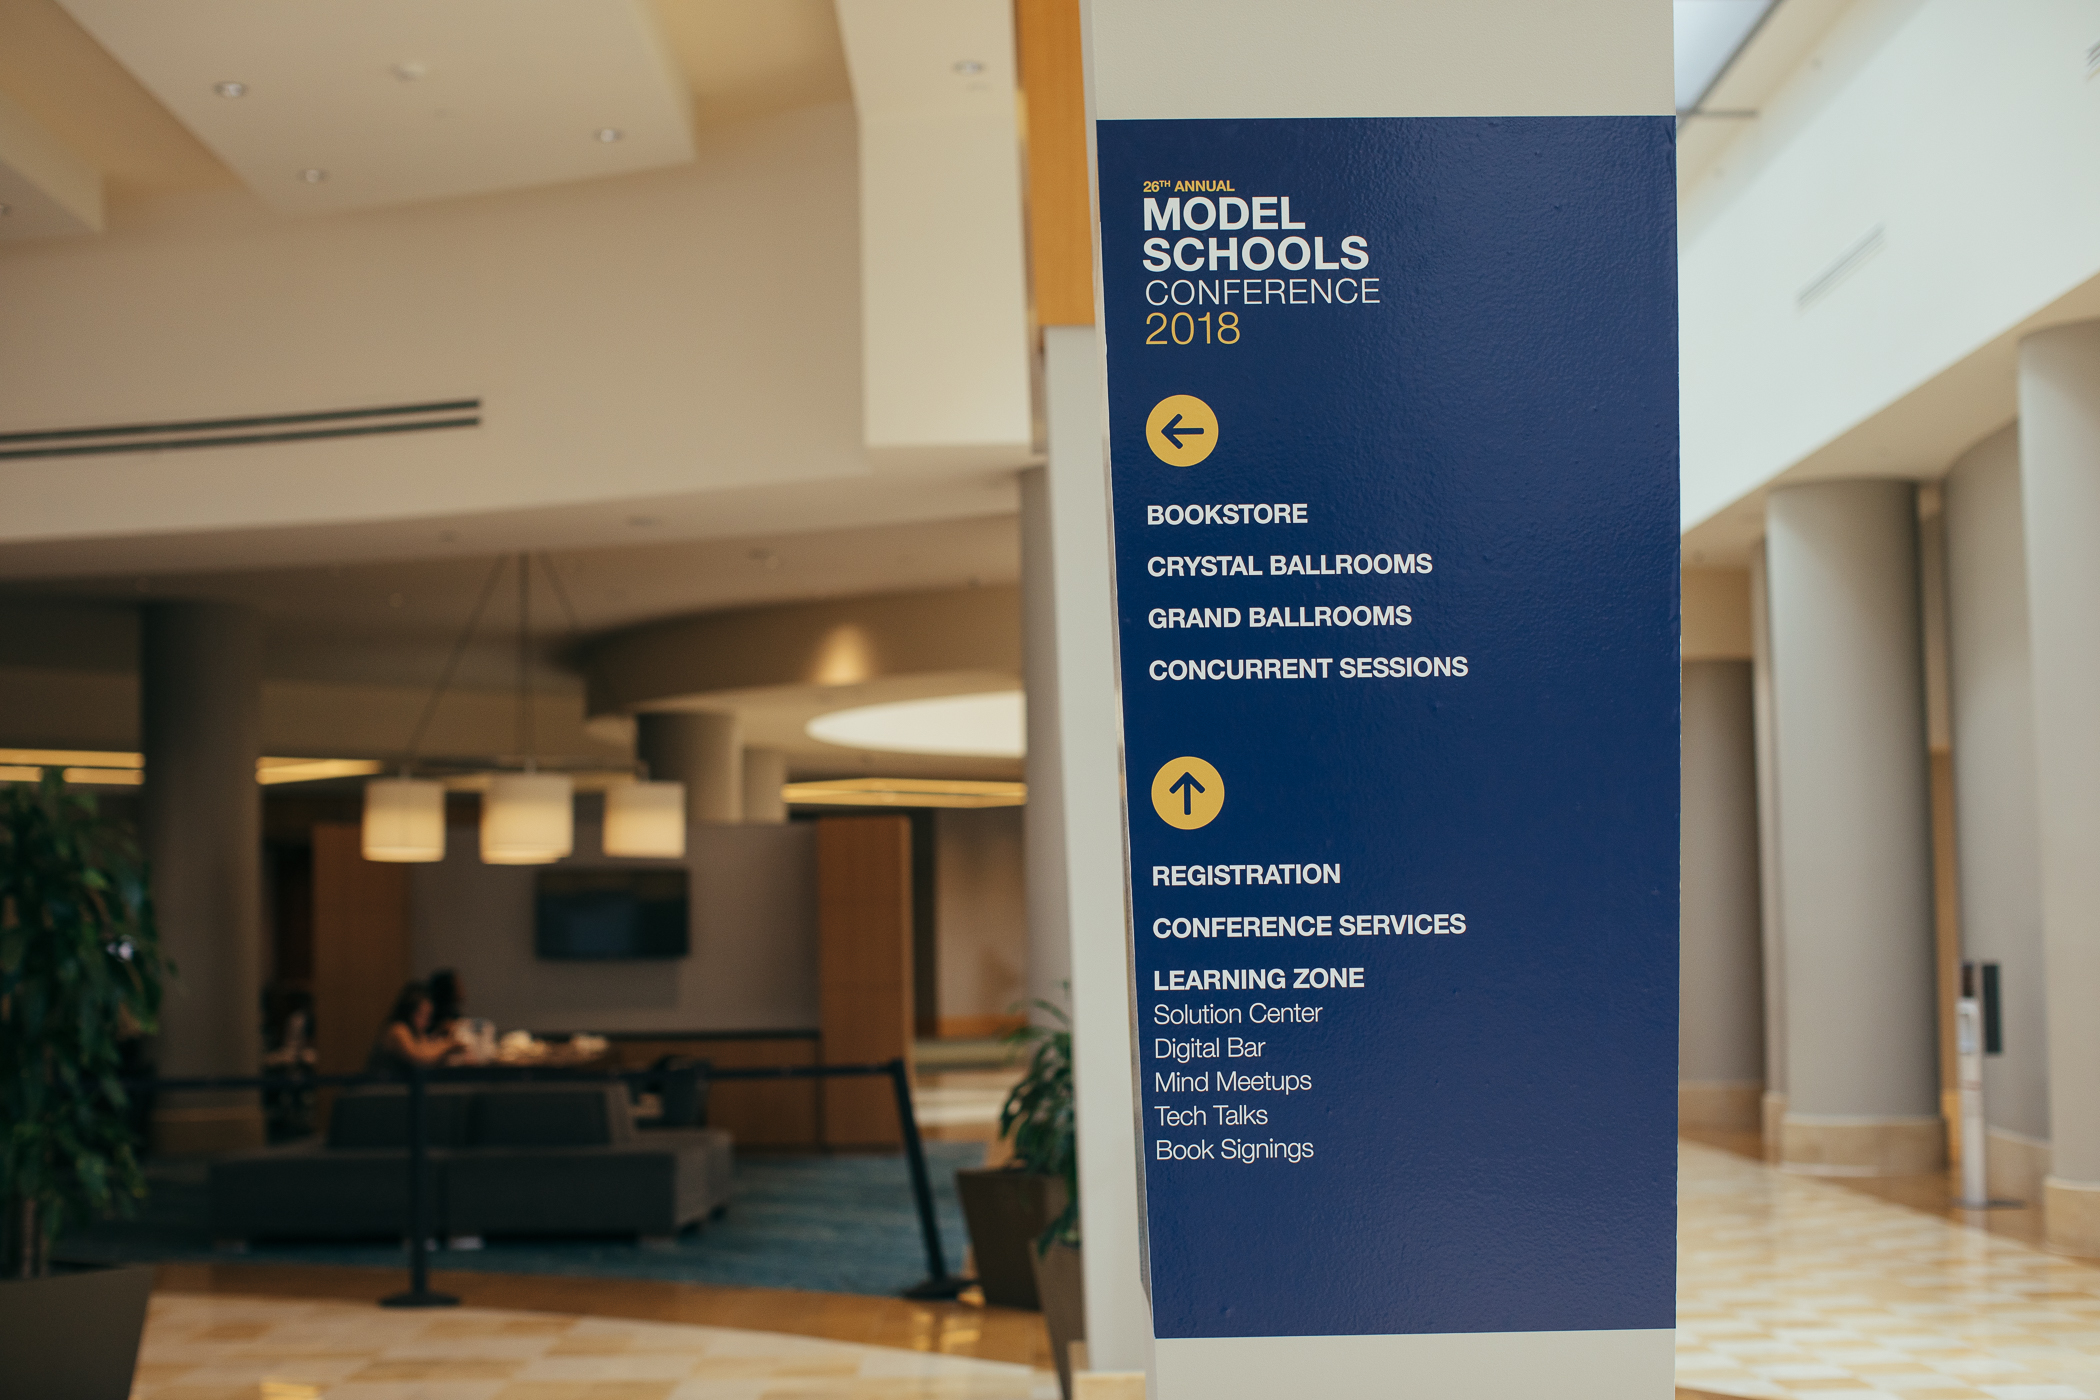 live event commercial photography brand storytelling for education florida conference photographer ©2018abigailbobophotography-1.jpg